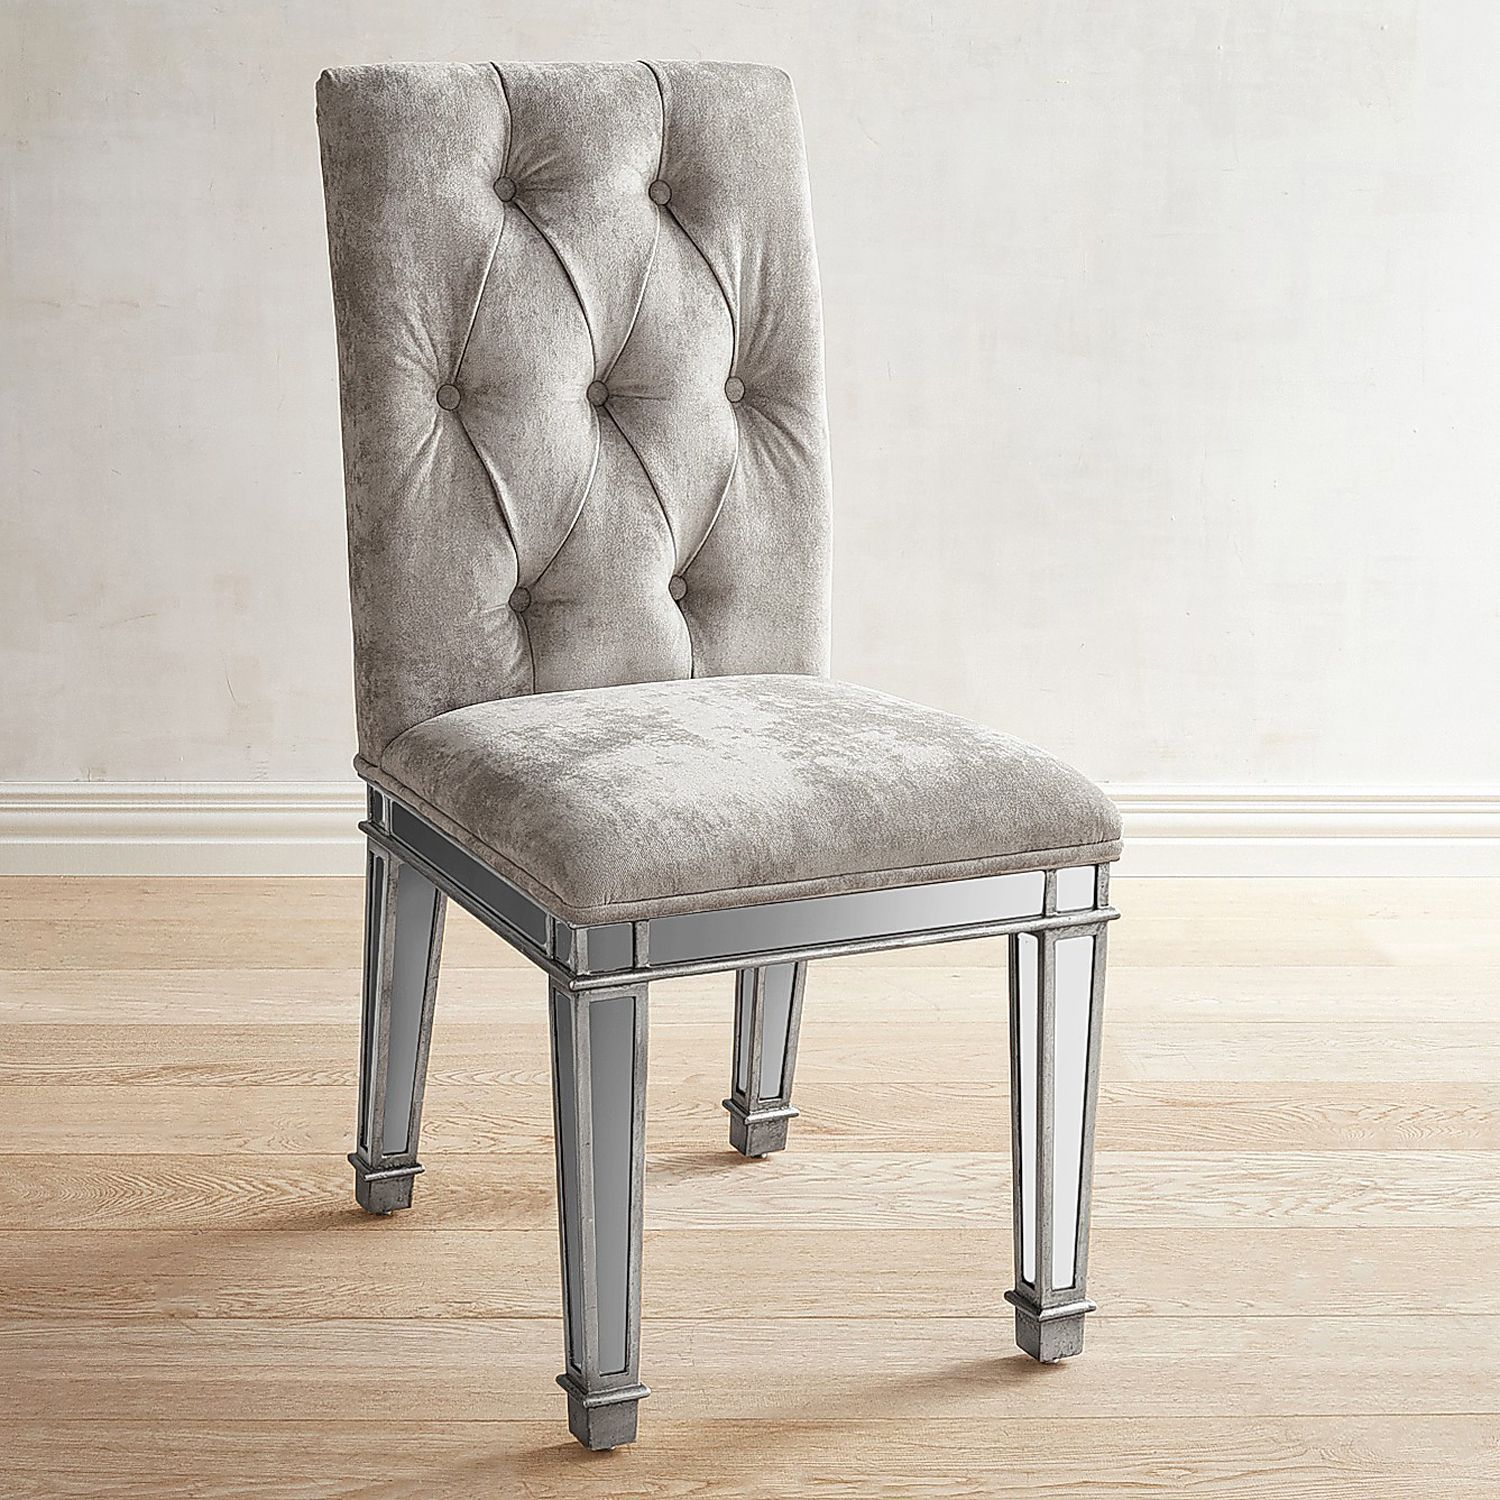 Hayworth Mirrored Dining Chair Pier 1 Imports Dining Chairs Furniture Office Waiting Room Chairs